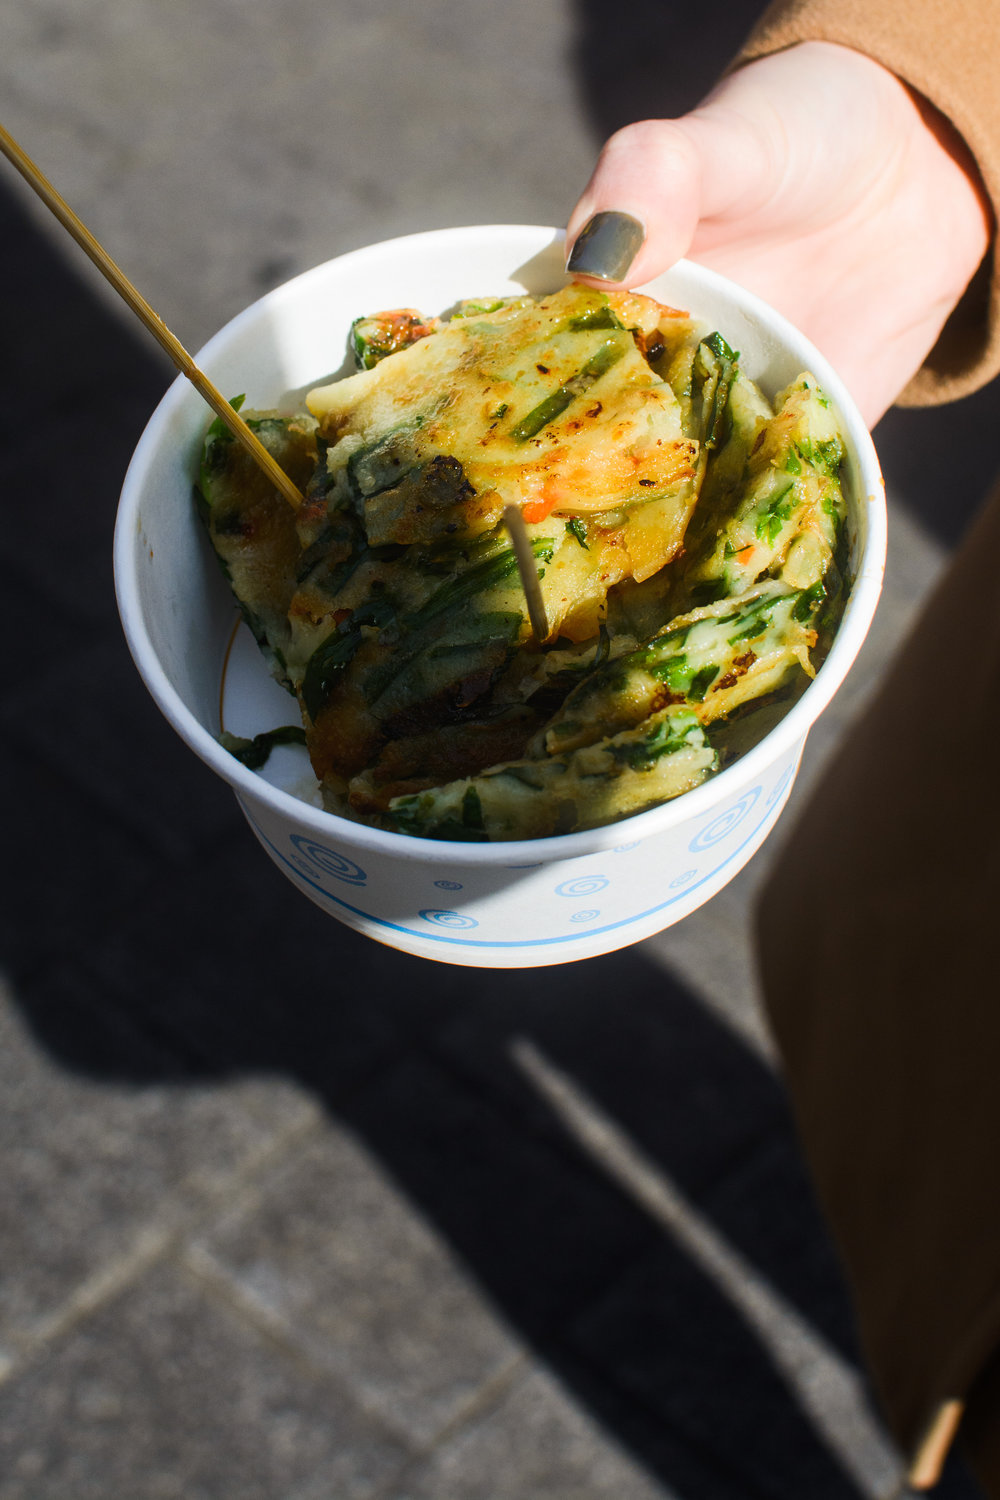 Leek pancake, cut and served in a bowl for easy street eating.